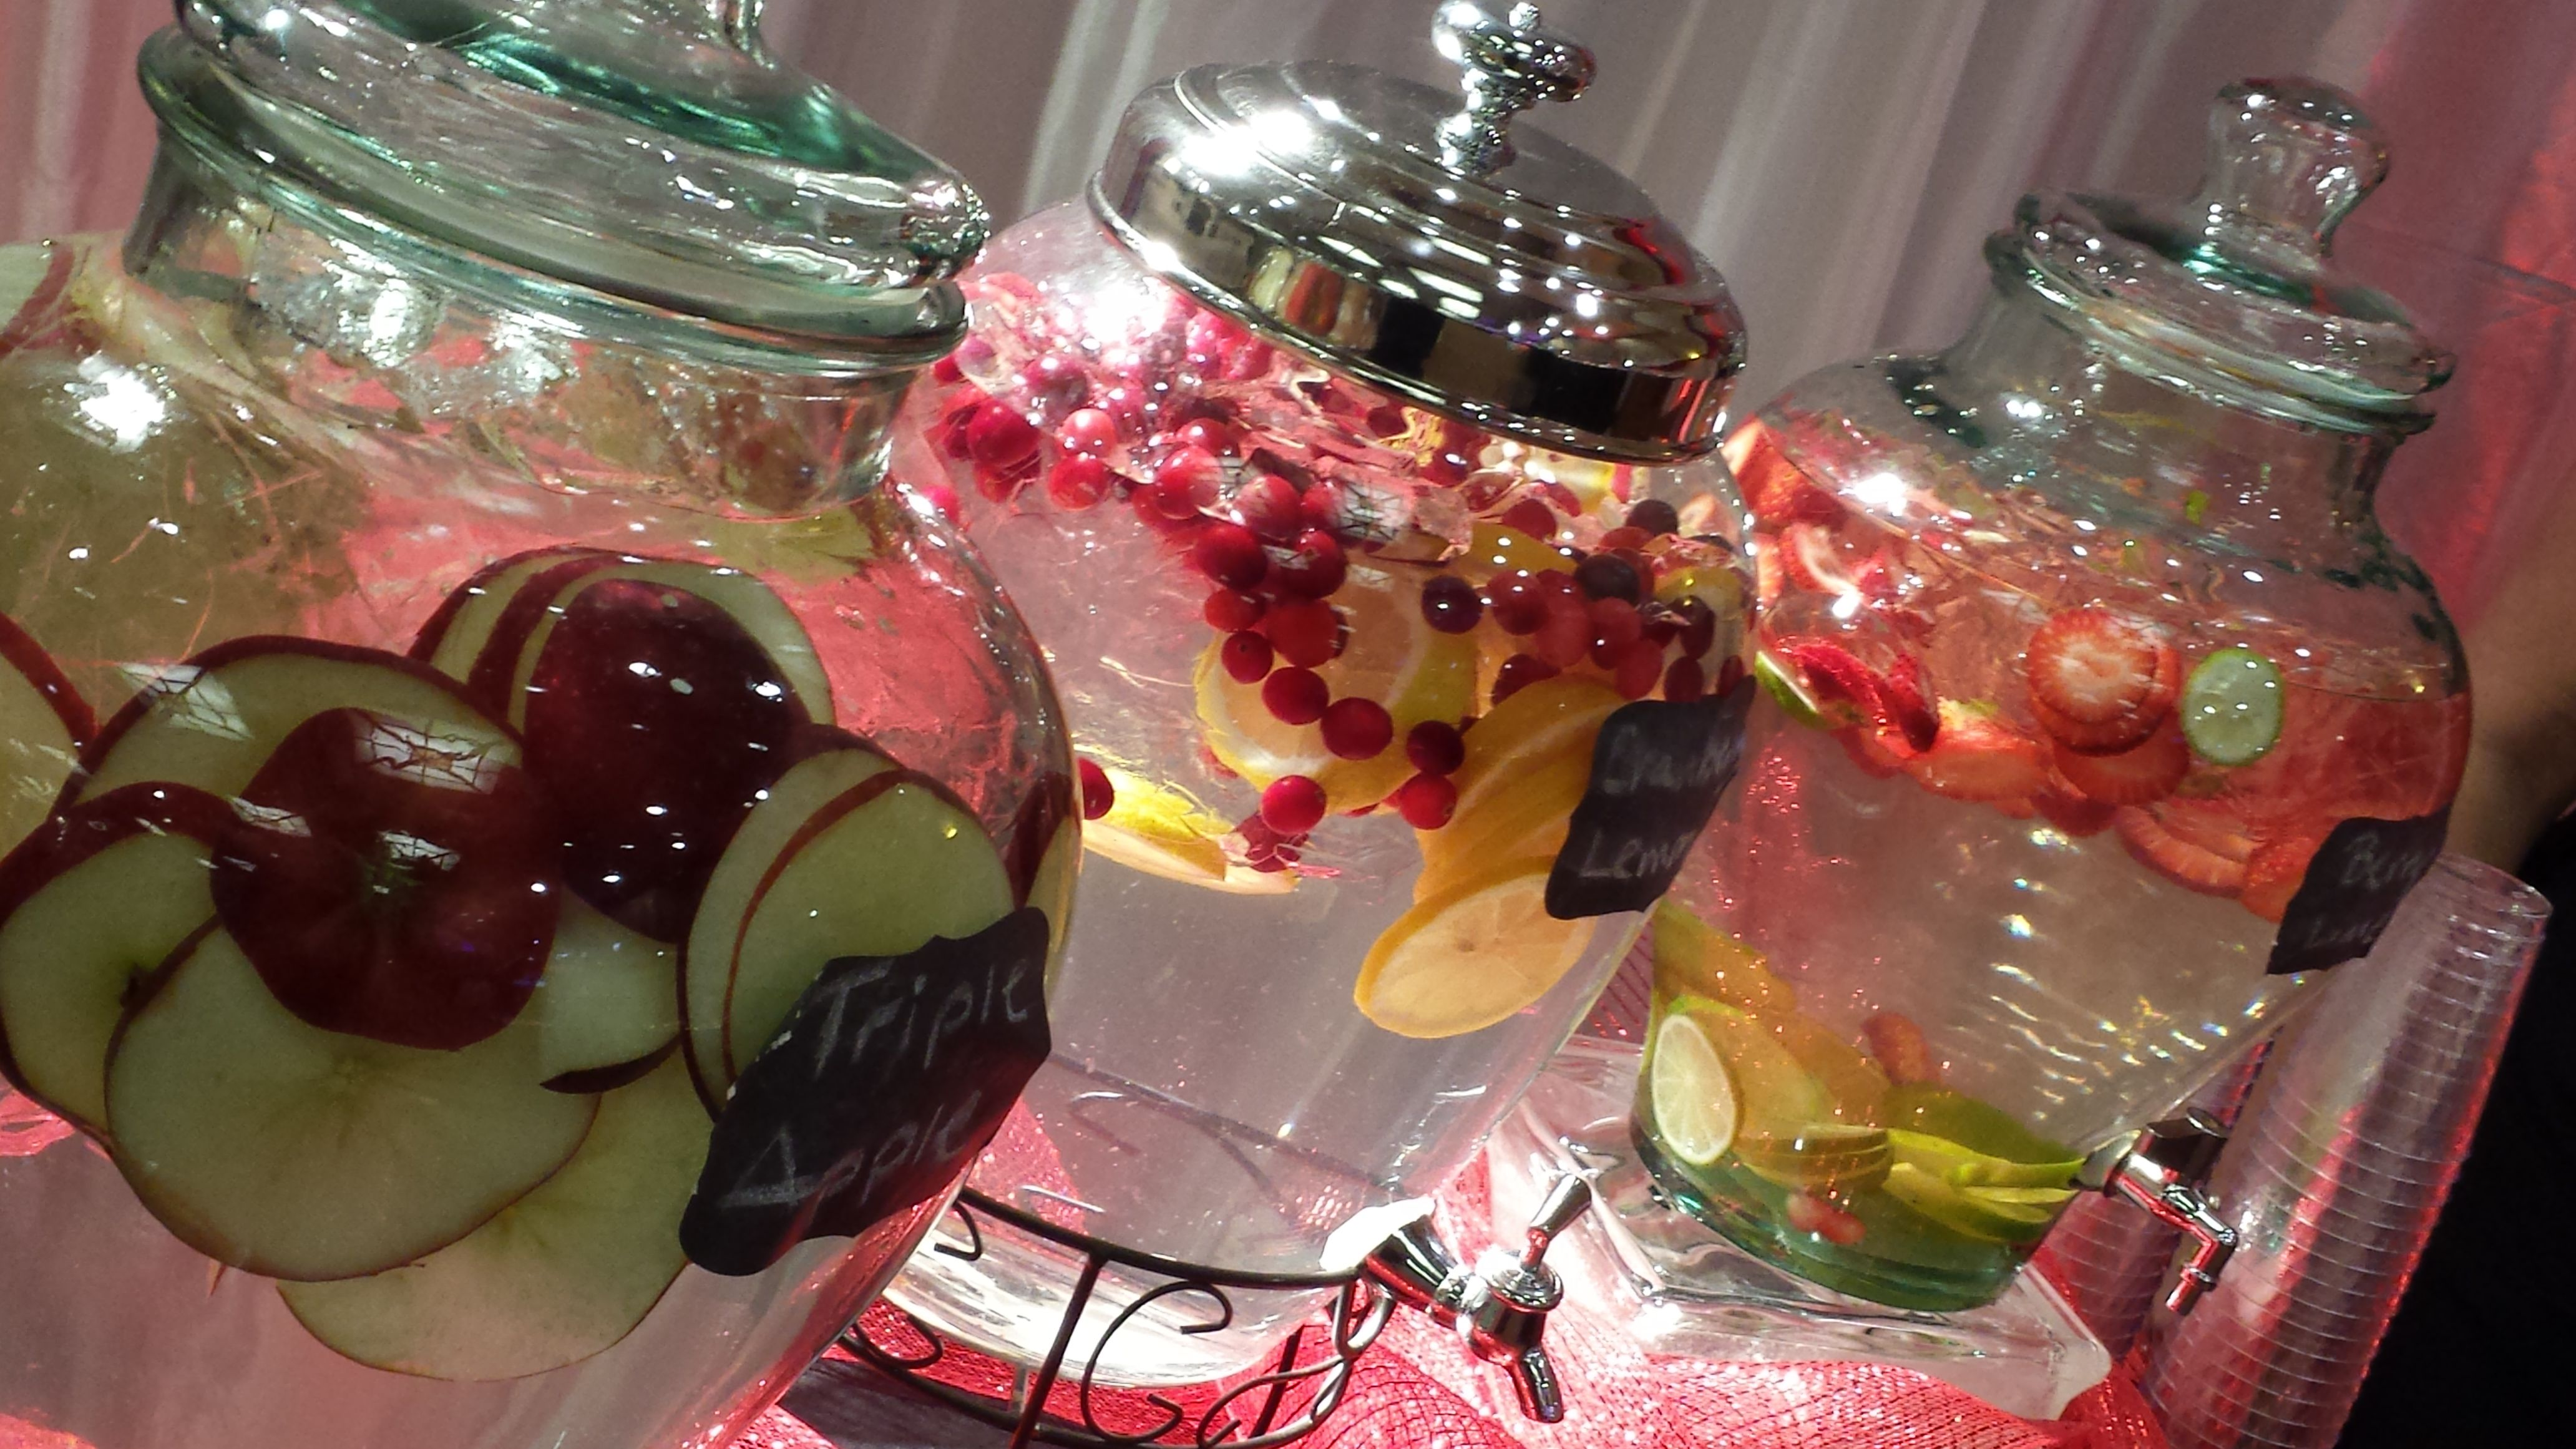 Use Sinks At A Salon For Drink Bins When Having An Event! My